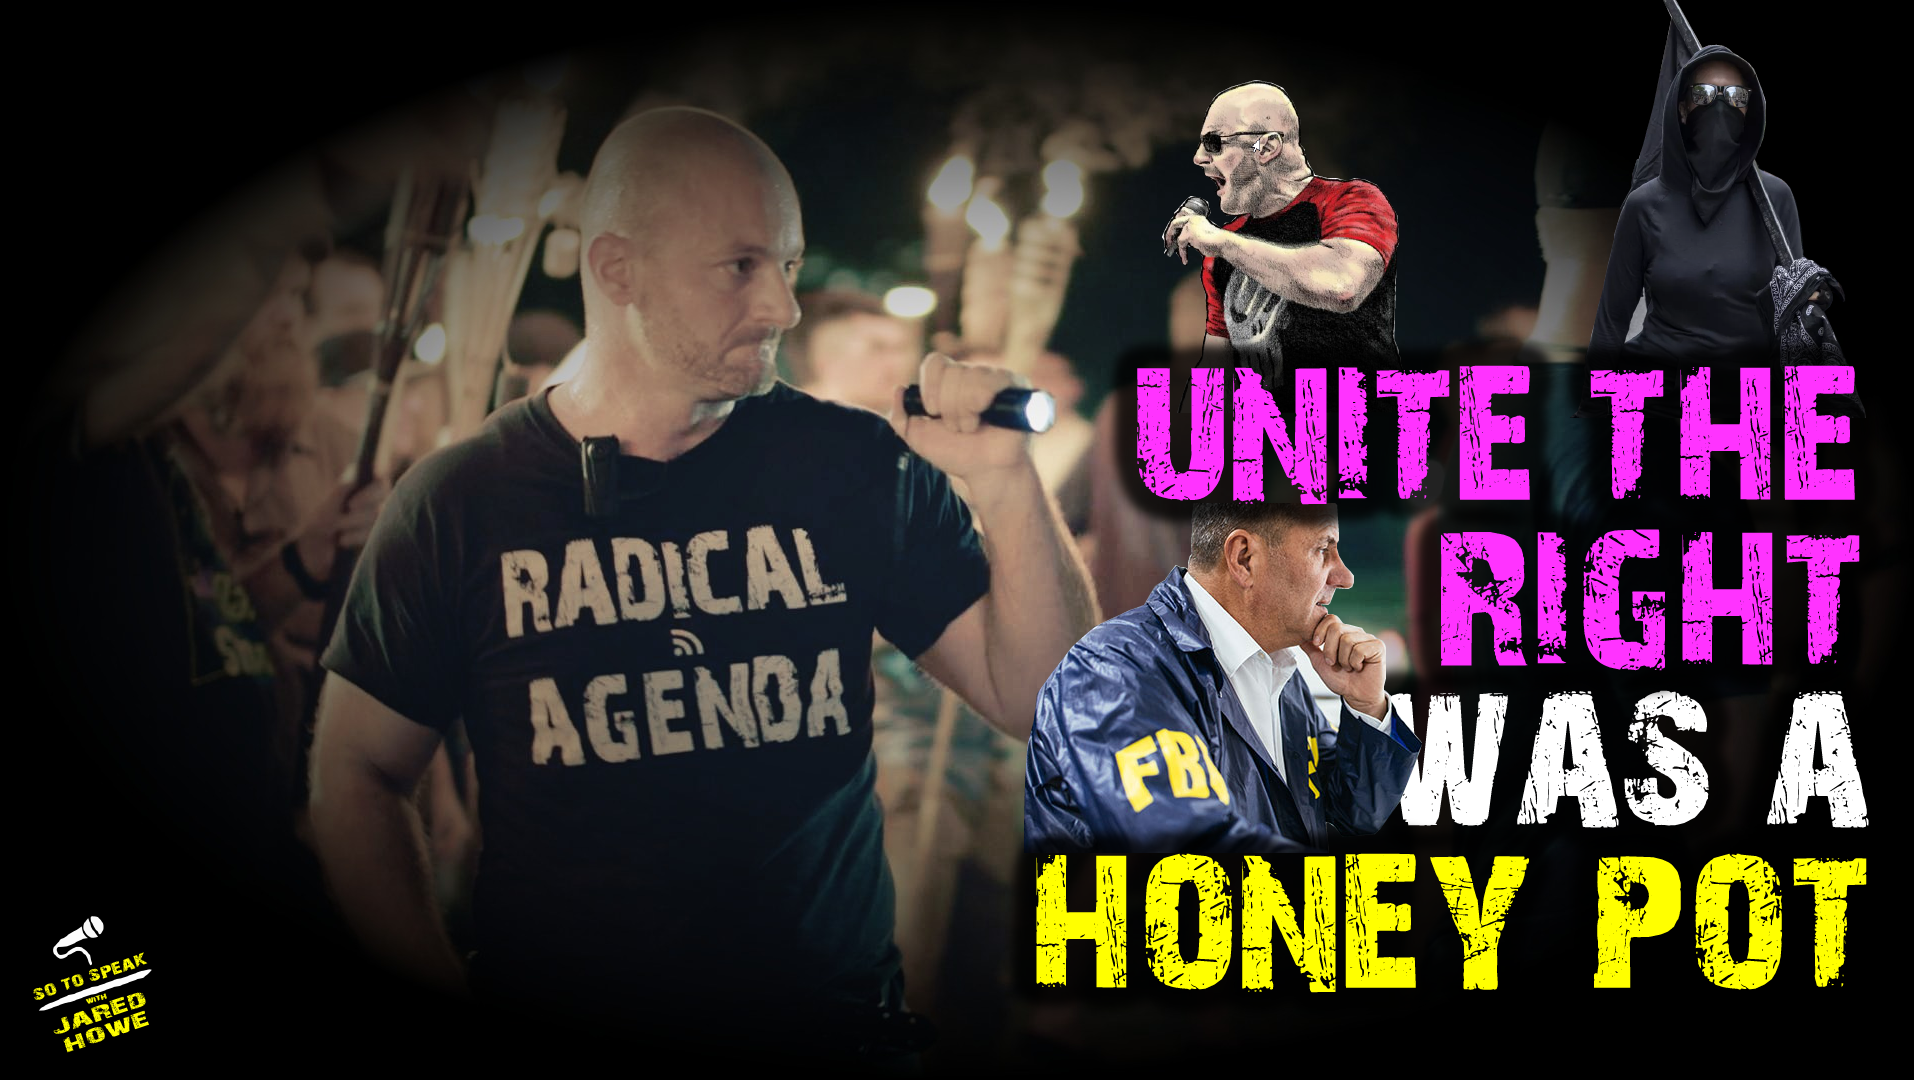 unite the right christopher cantwell eric striker mike enoch charlottesville hoax honeypot